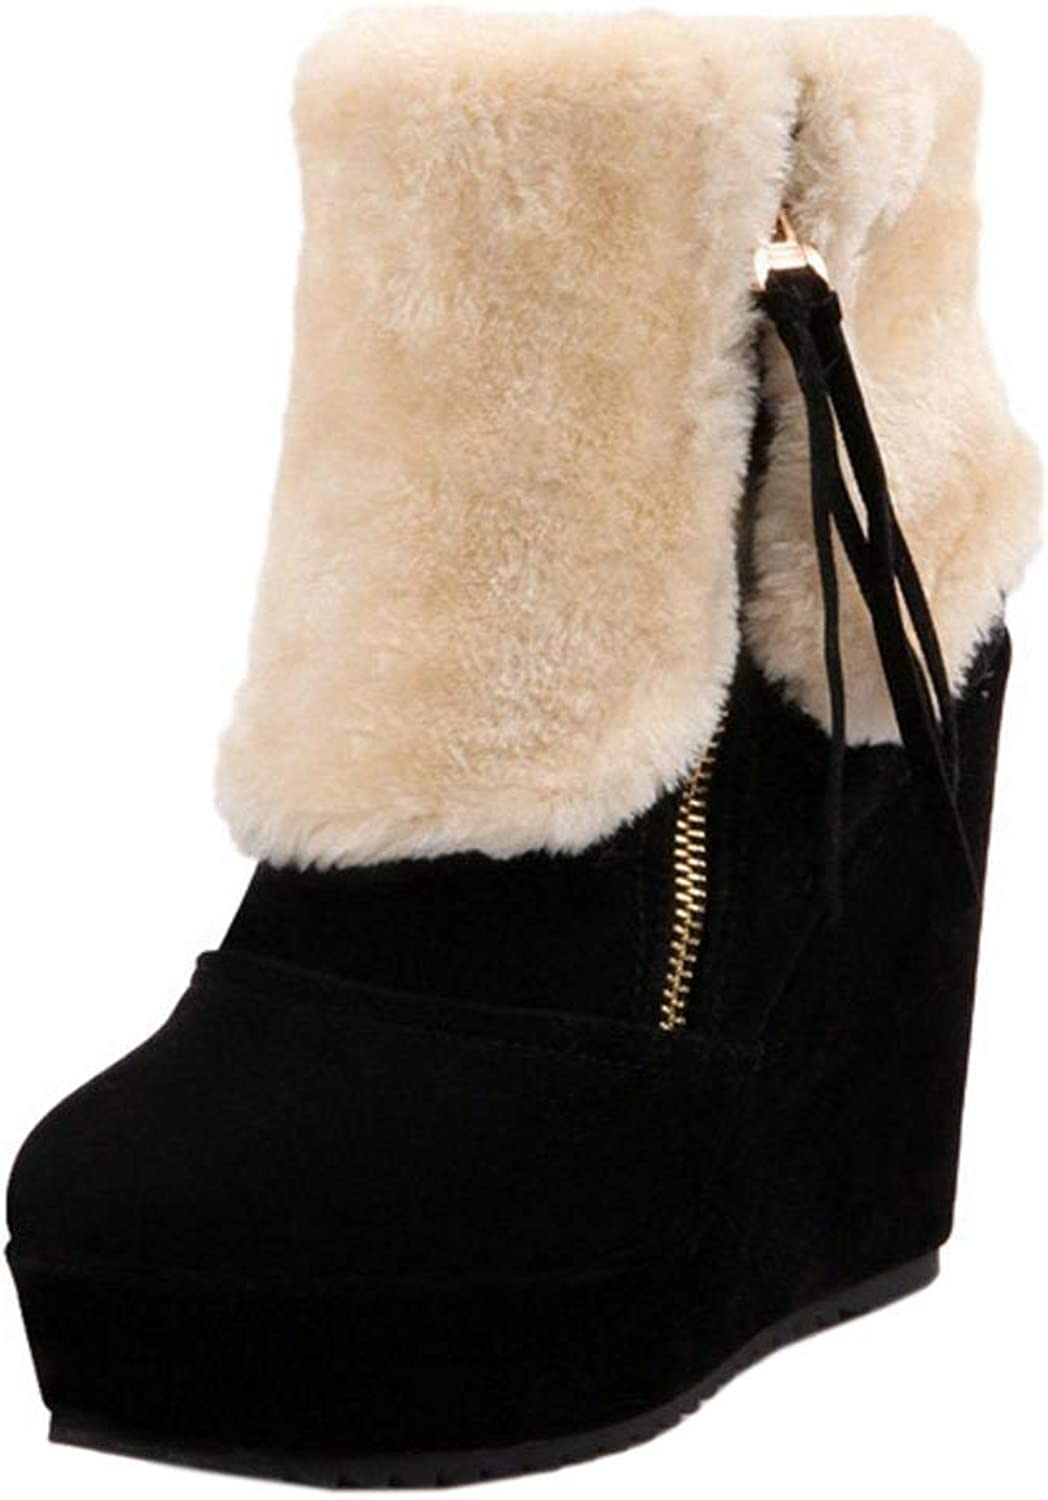 Unm Women's Ankle Boots with Heels